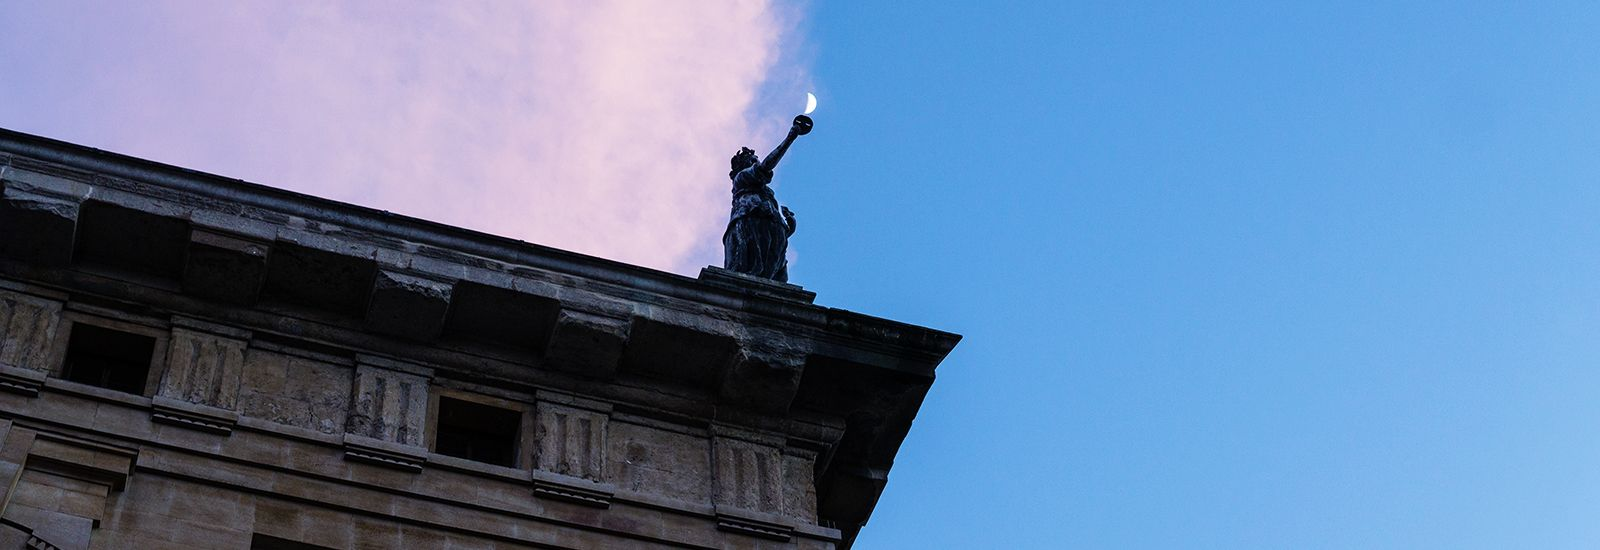 A statue on the corner of the Clarendon Building at dusk